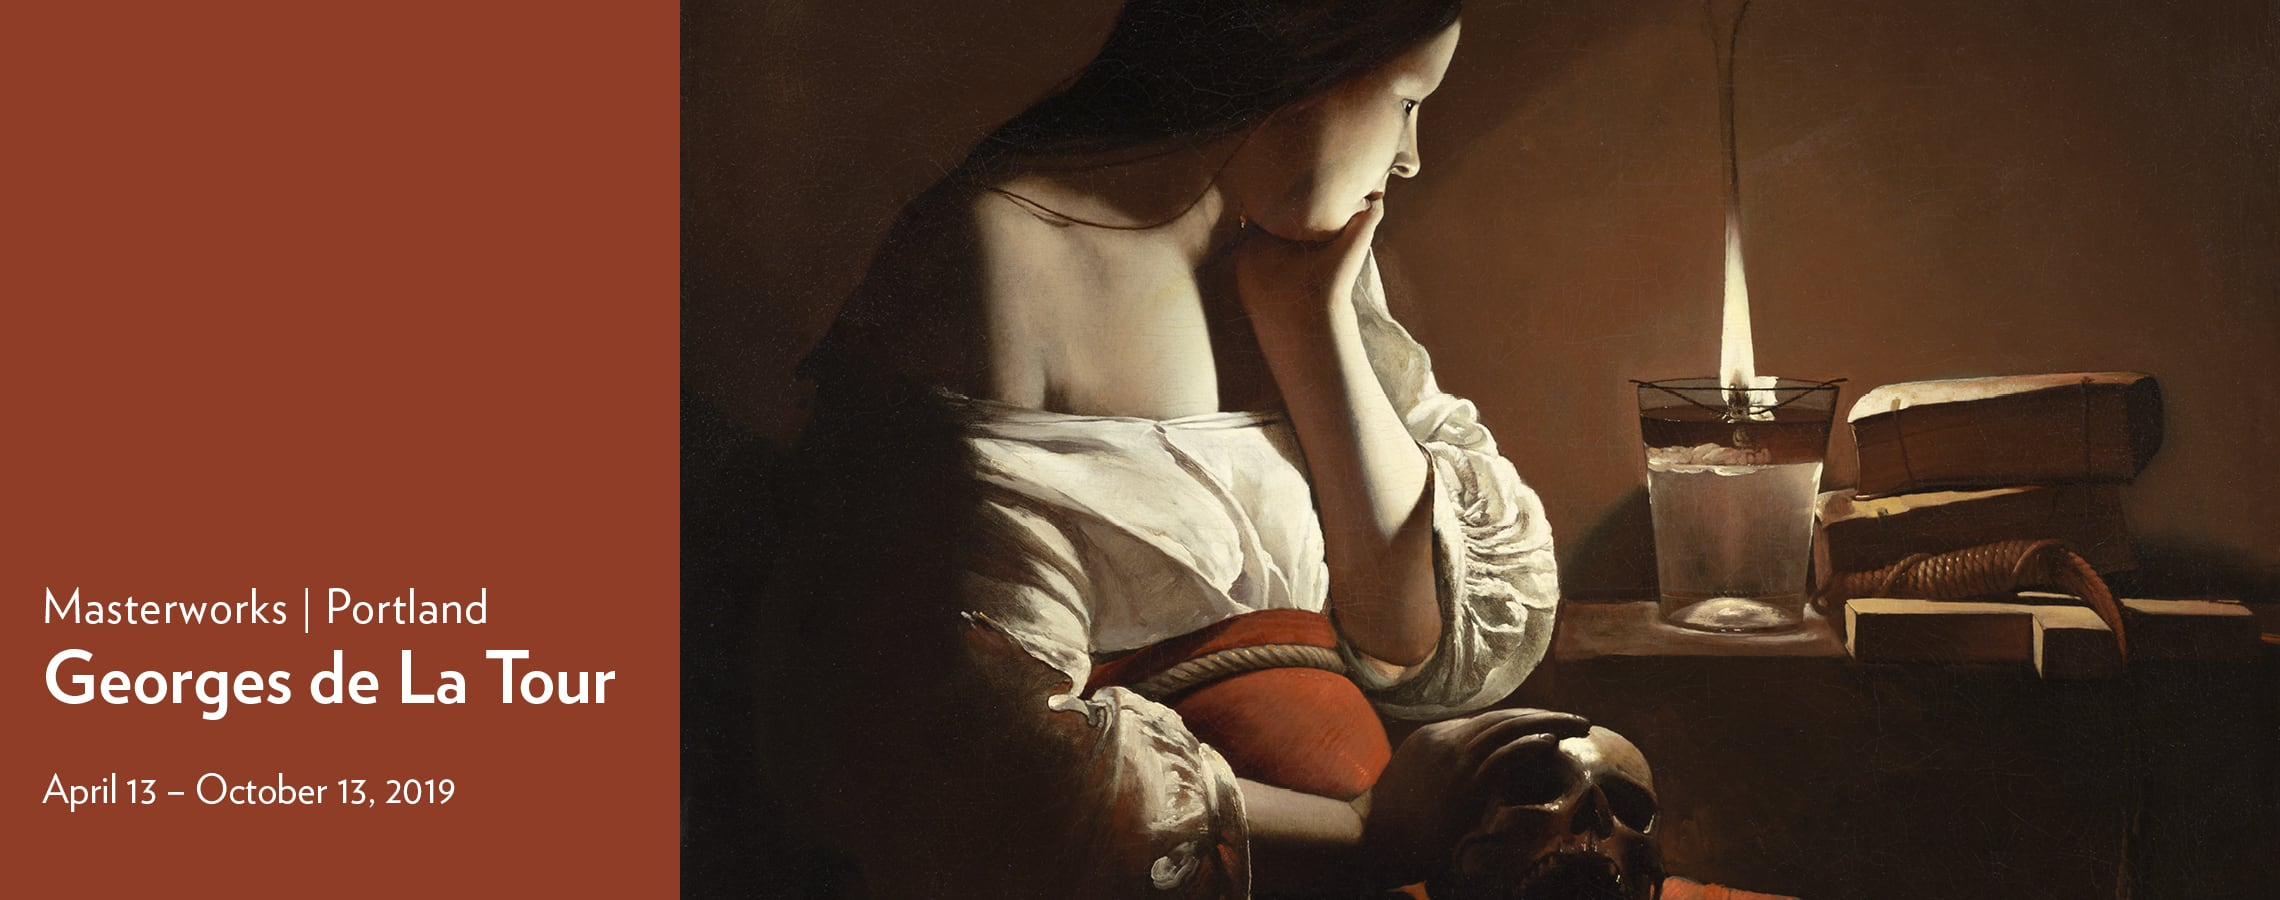 Masterworks | Portland: Georges de La Tour – April 13 – October 13, 2019